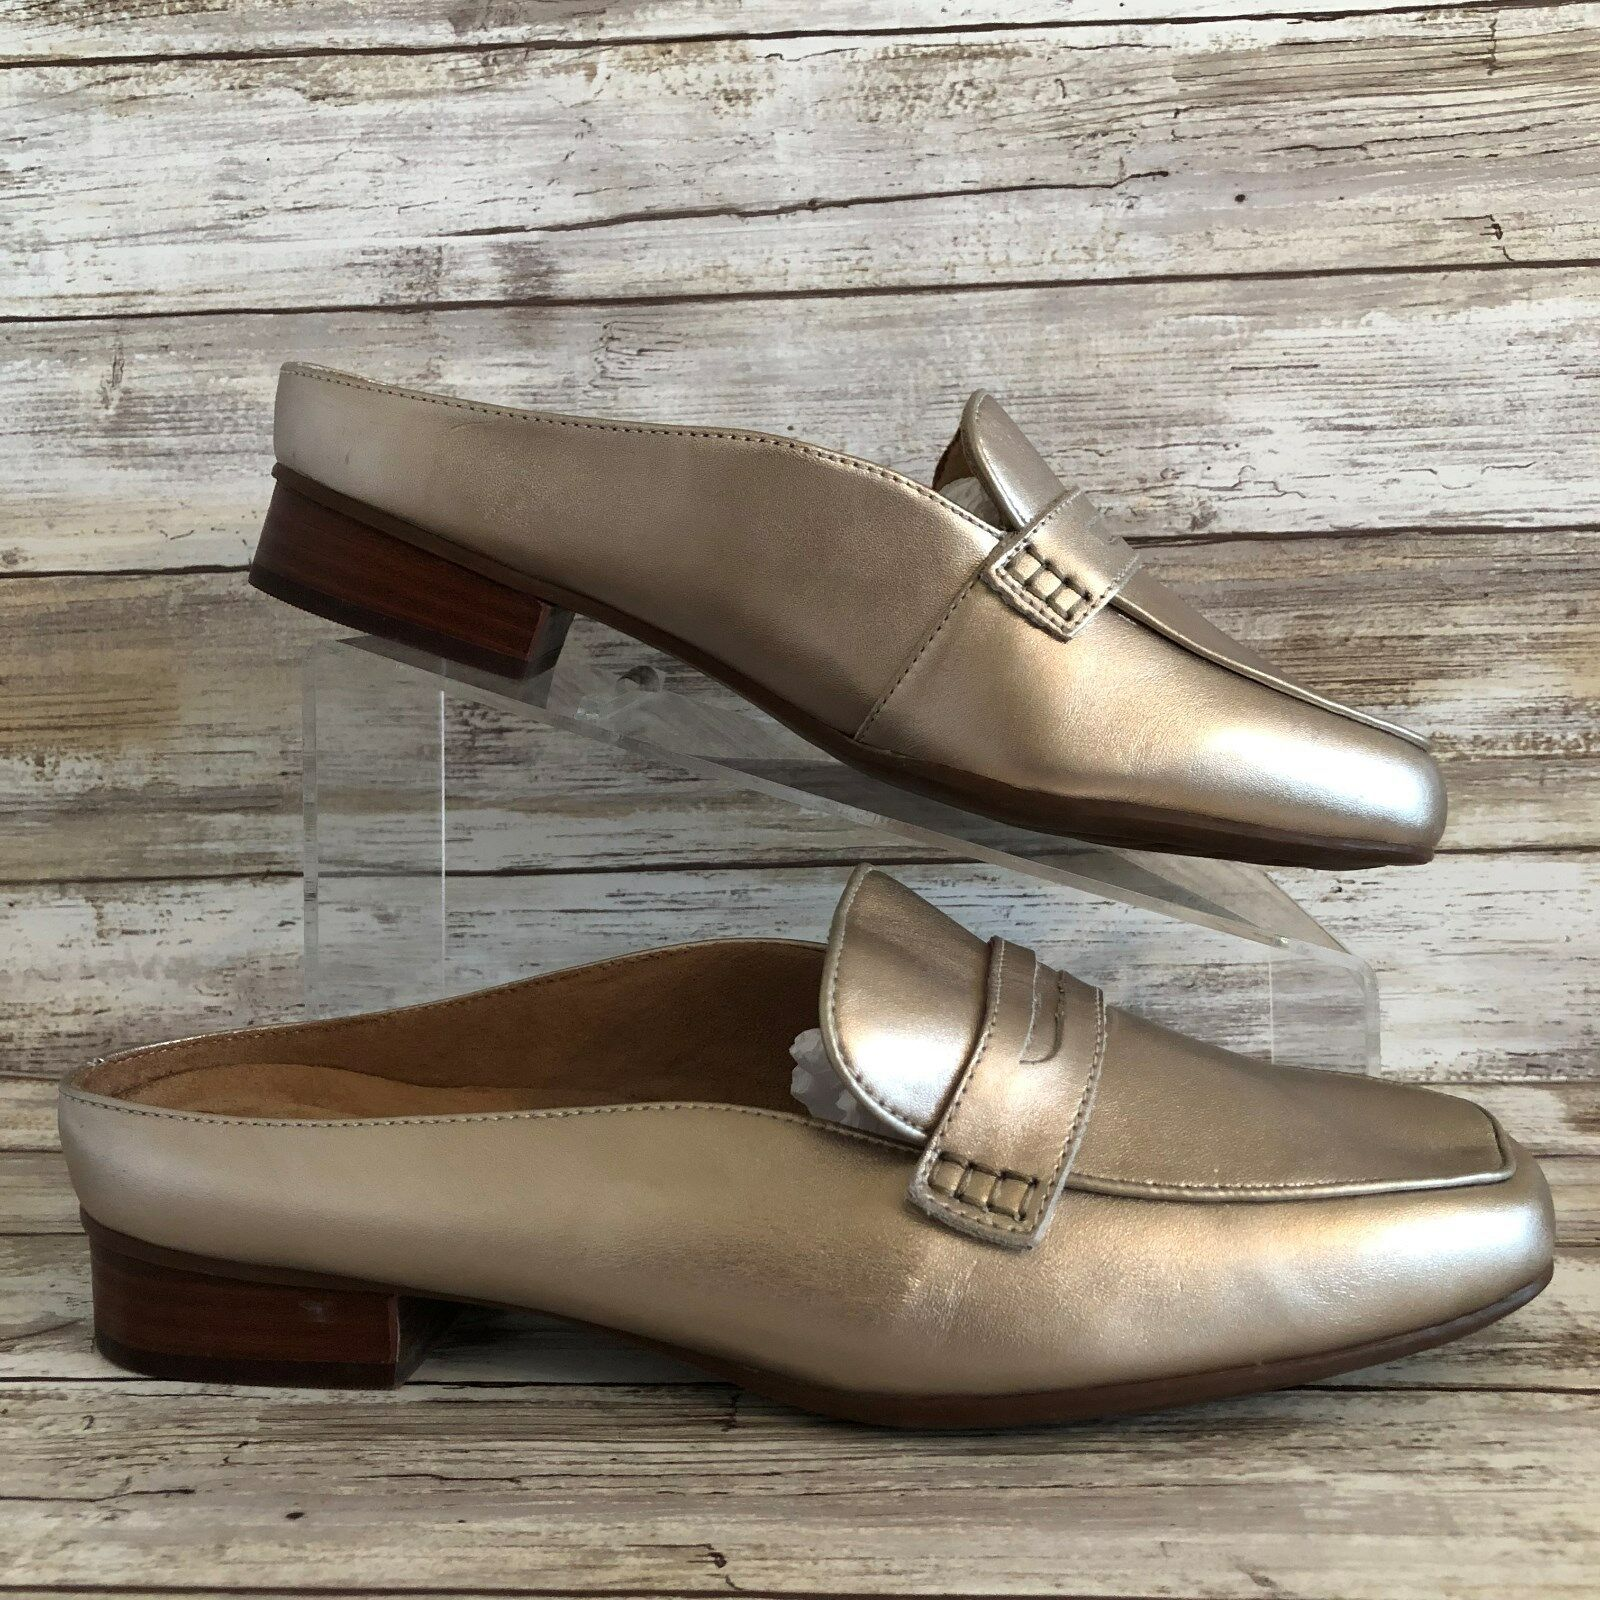 Clarks Mules 10W gold Metallic Leather Moc Toe Low Stacked Block Heel Womens